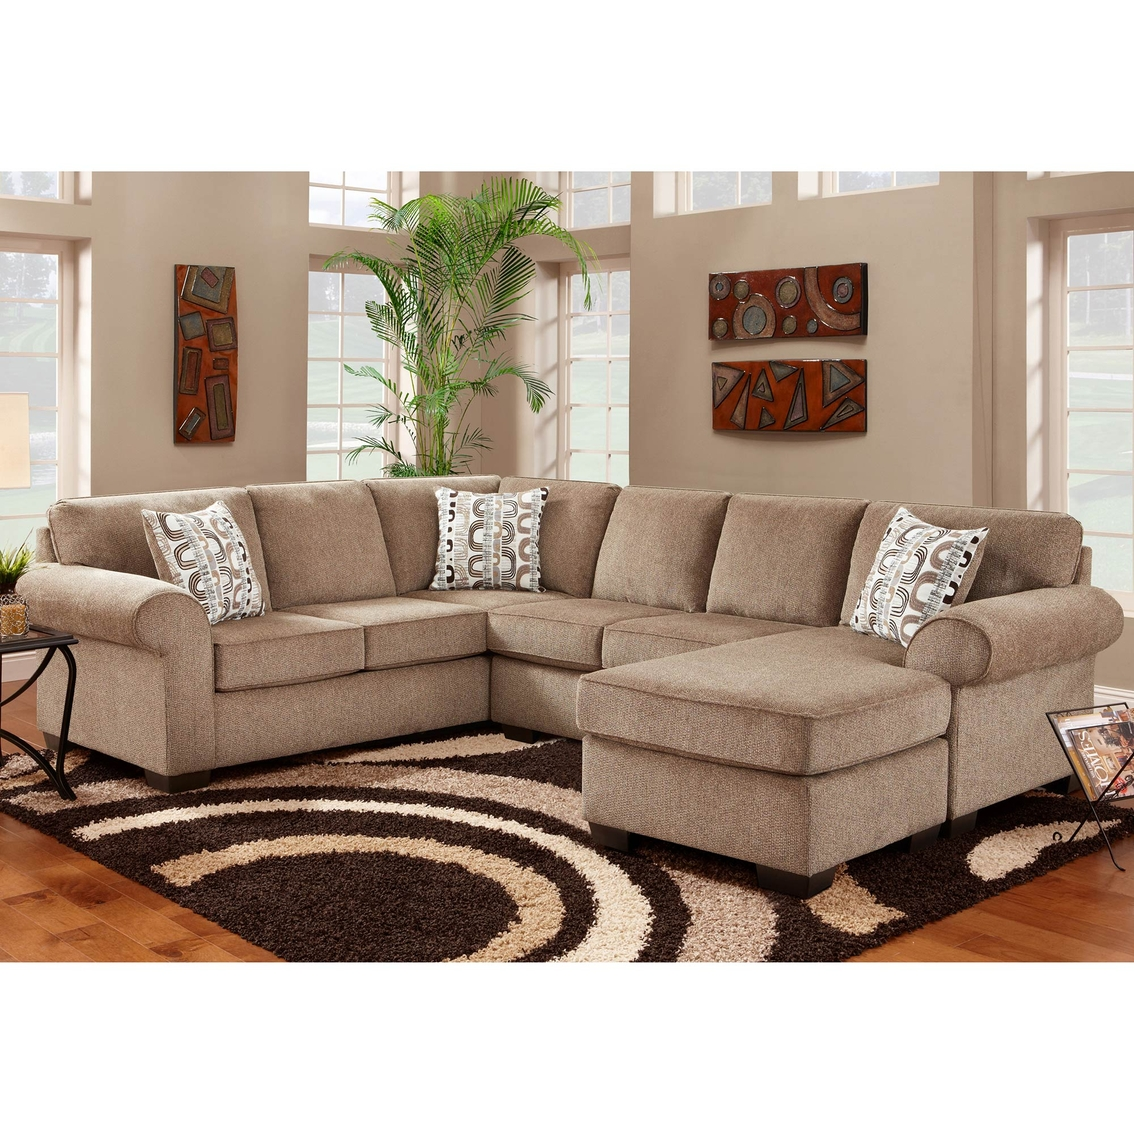 Chelsea Home Furniture Roosevelt Sectional